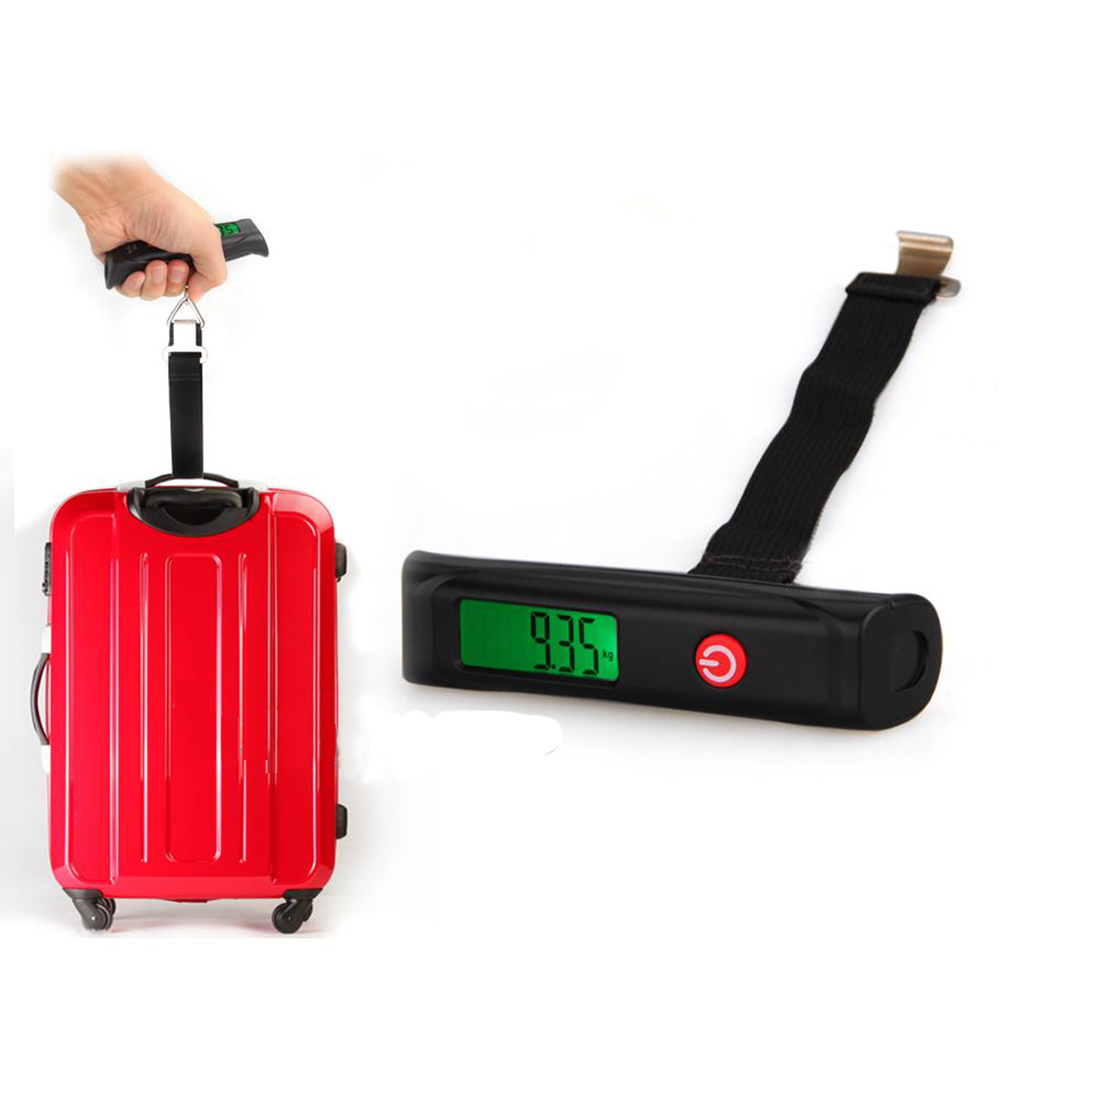 Luggage Weight Measure Promotion-Shop for Promotional Luggage ...